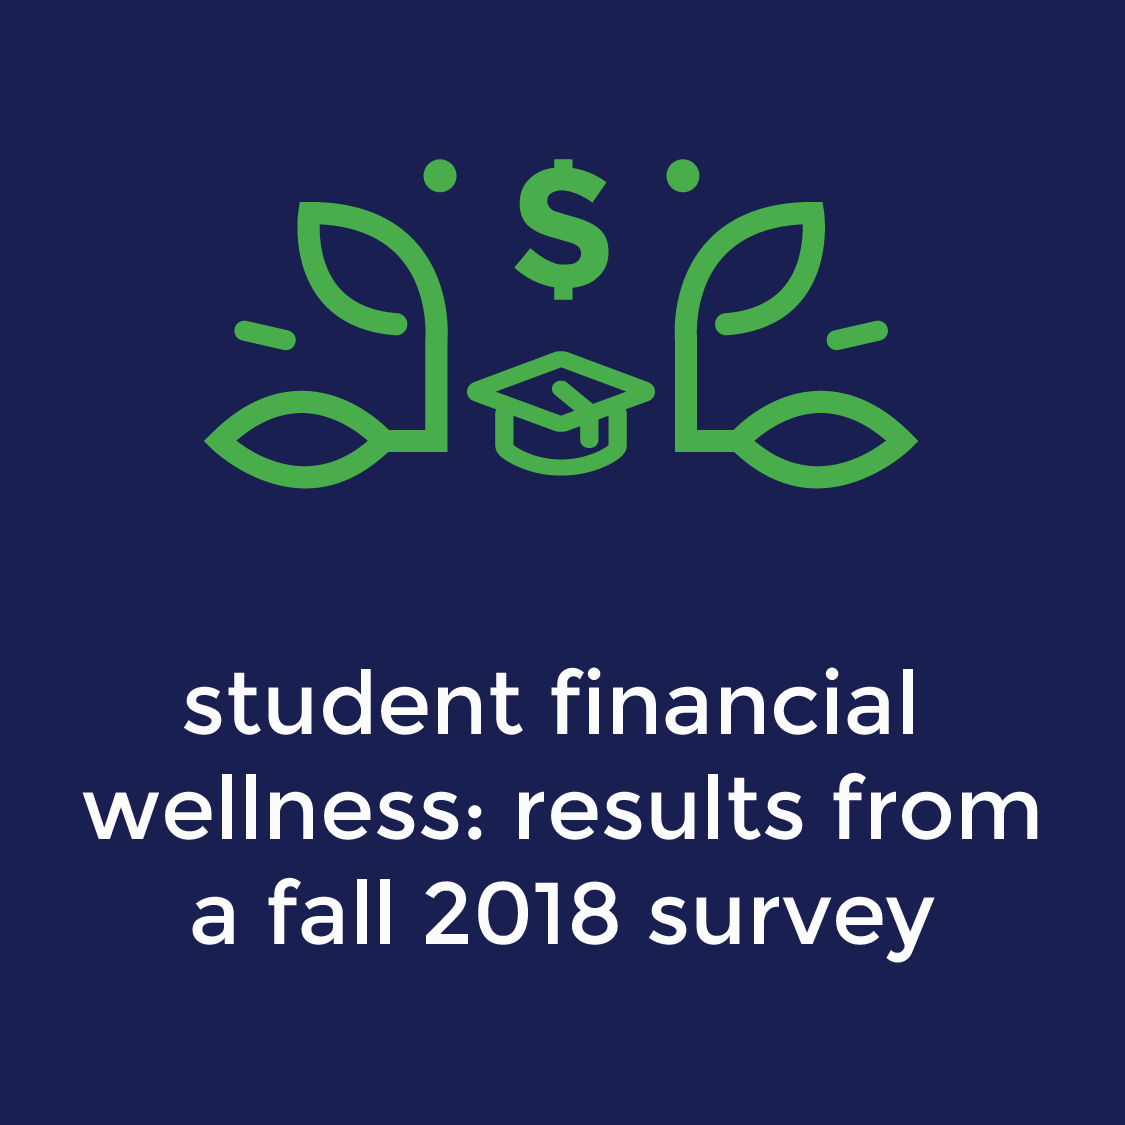 6.12.19 | 2:00-3:00pm EST - Trellis' Student Financial Wellness Survey (SFWS) seeks to document the financial well-being of post-secondary students and provide institutions with a detailed profile of the financial issues their students face, some of which could potentially impact their success in college. In this session, the presenter will share findings from the Fall 2018 survey and discuss the context and implications of the findings for institutions. Student financial wellness topics covered include how students pay for college, attitudes on debt, basic needs security, student debt, academic goals, public assistance usage, and financial obligations to family. The SFWS is free for institutions to use, and Trellis is currently recruiting institutions to participate in the Fall 2019 semester implementation.Presenter:Kasey Klepfer, Senior Research Analyst for Trellis Research.